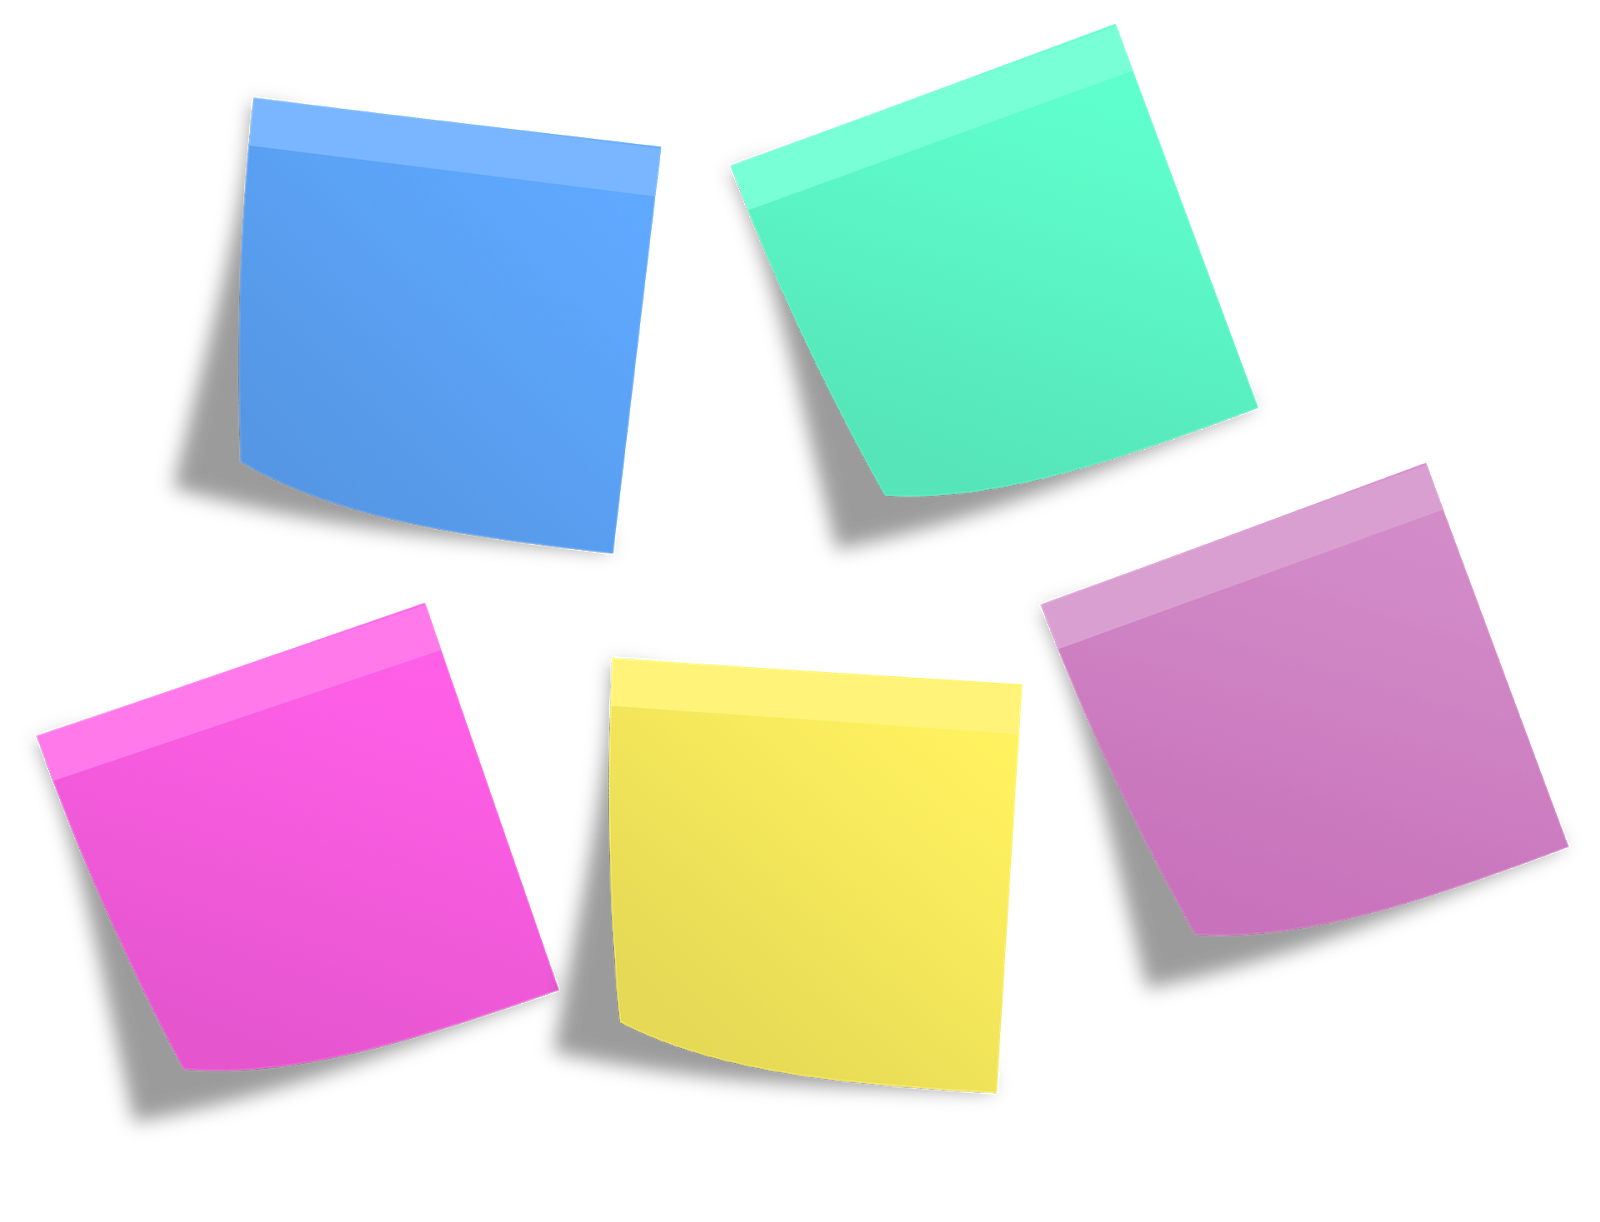 An example of slightly more photo-realistic Post-its from an image website